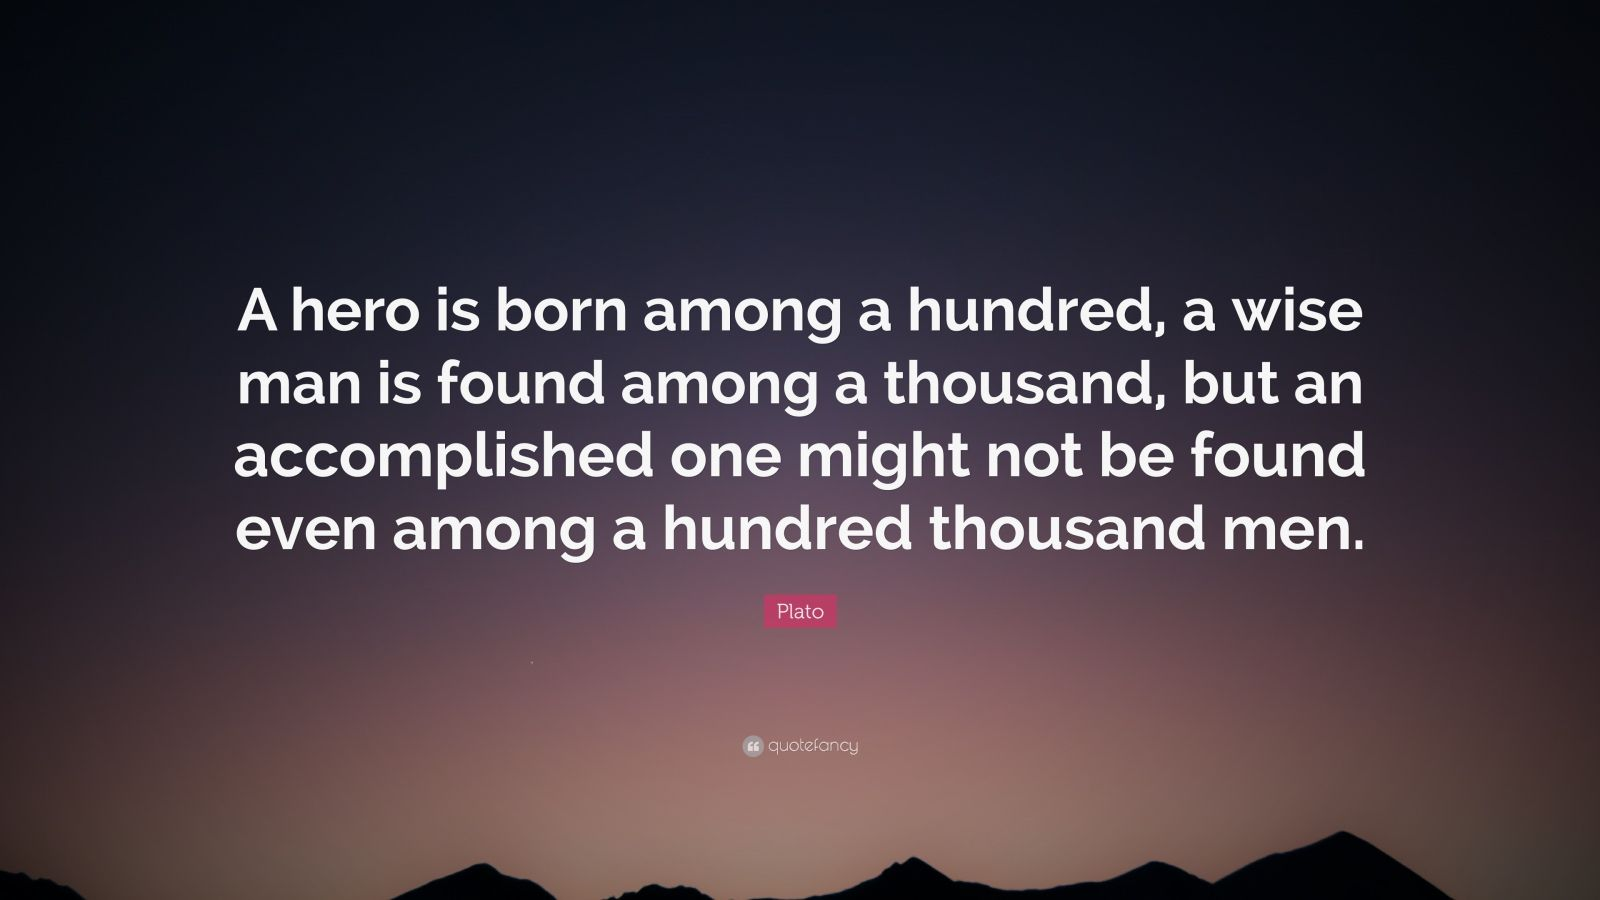 """Plato Quote: """"A hero is born among a hundred, a wise man is found among a thousand, but an accomplished one might not be found even among a hundred thousand men."""""""